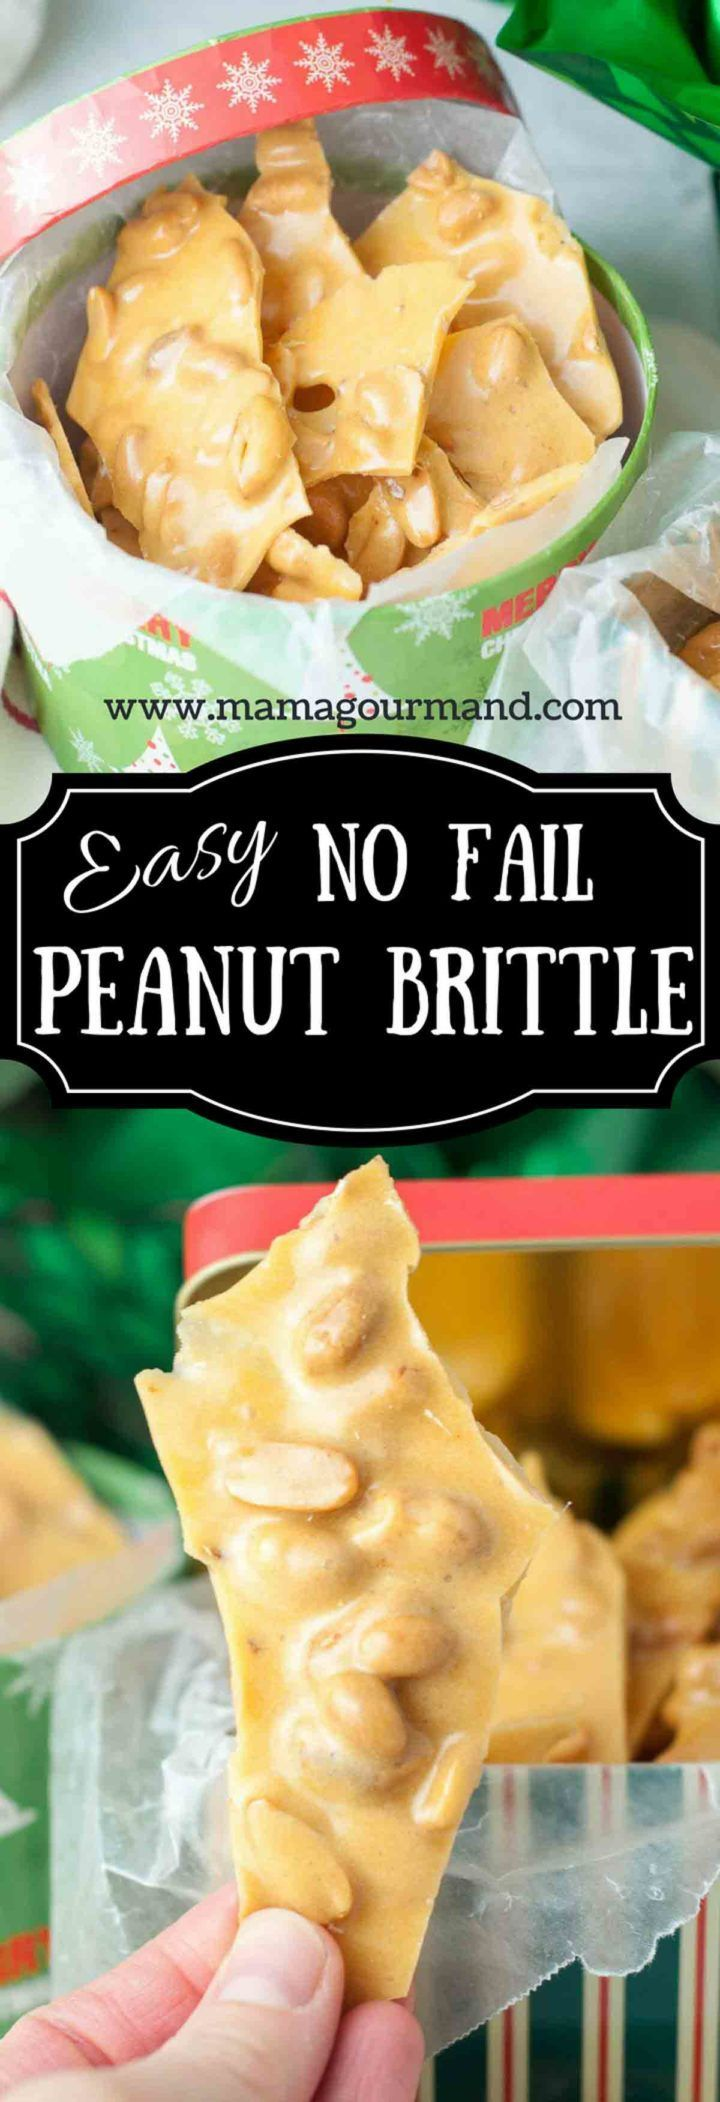 No Fail Peanut Brittle is an easy homemade snack that also makes the perfect holiday gift. www.mamagourmand.com